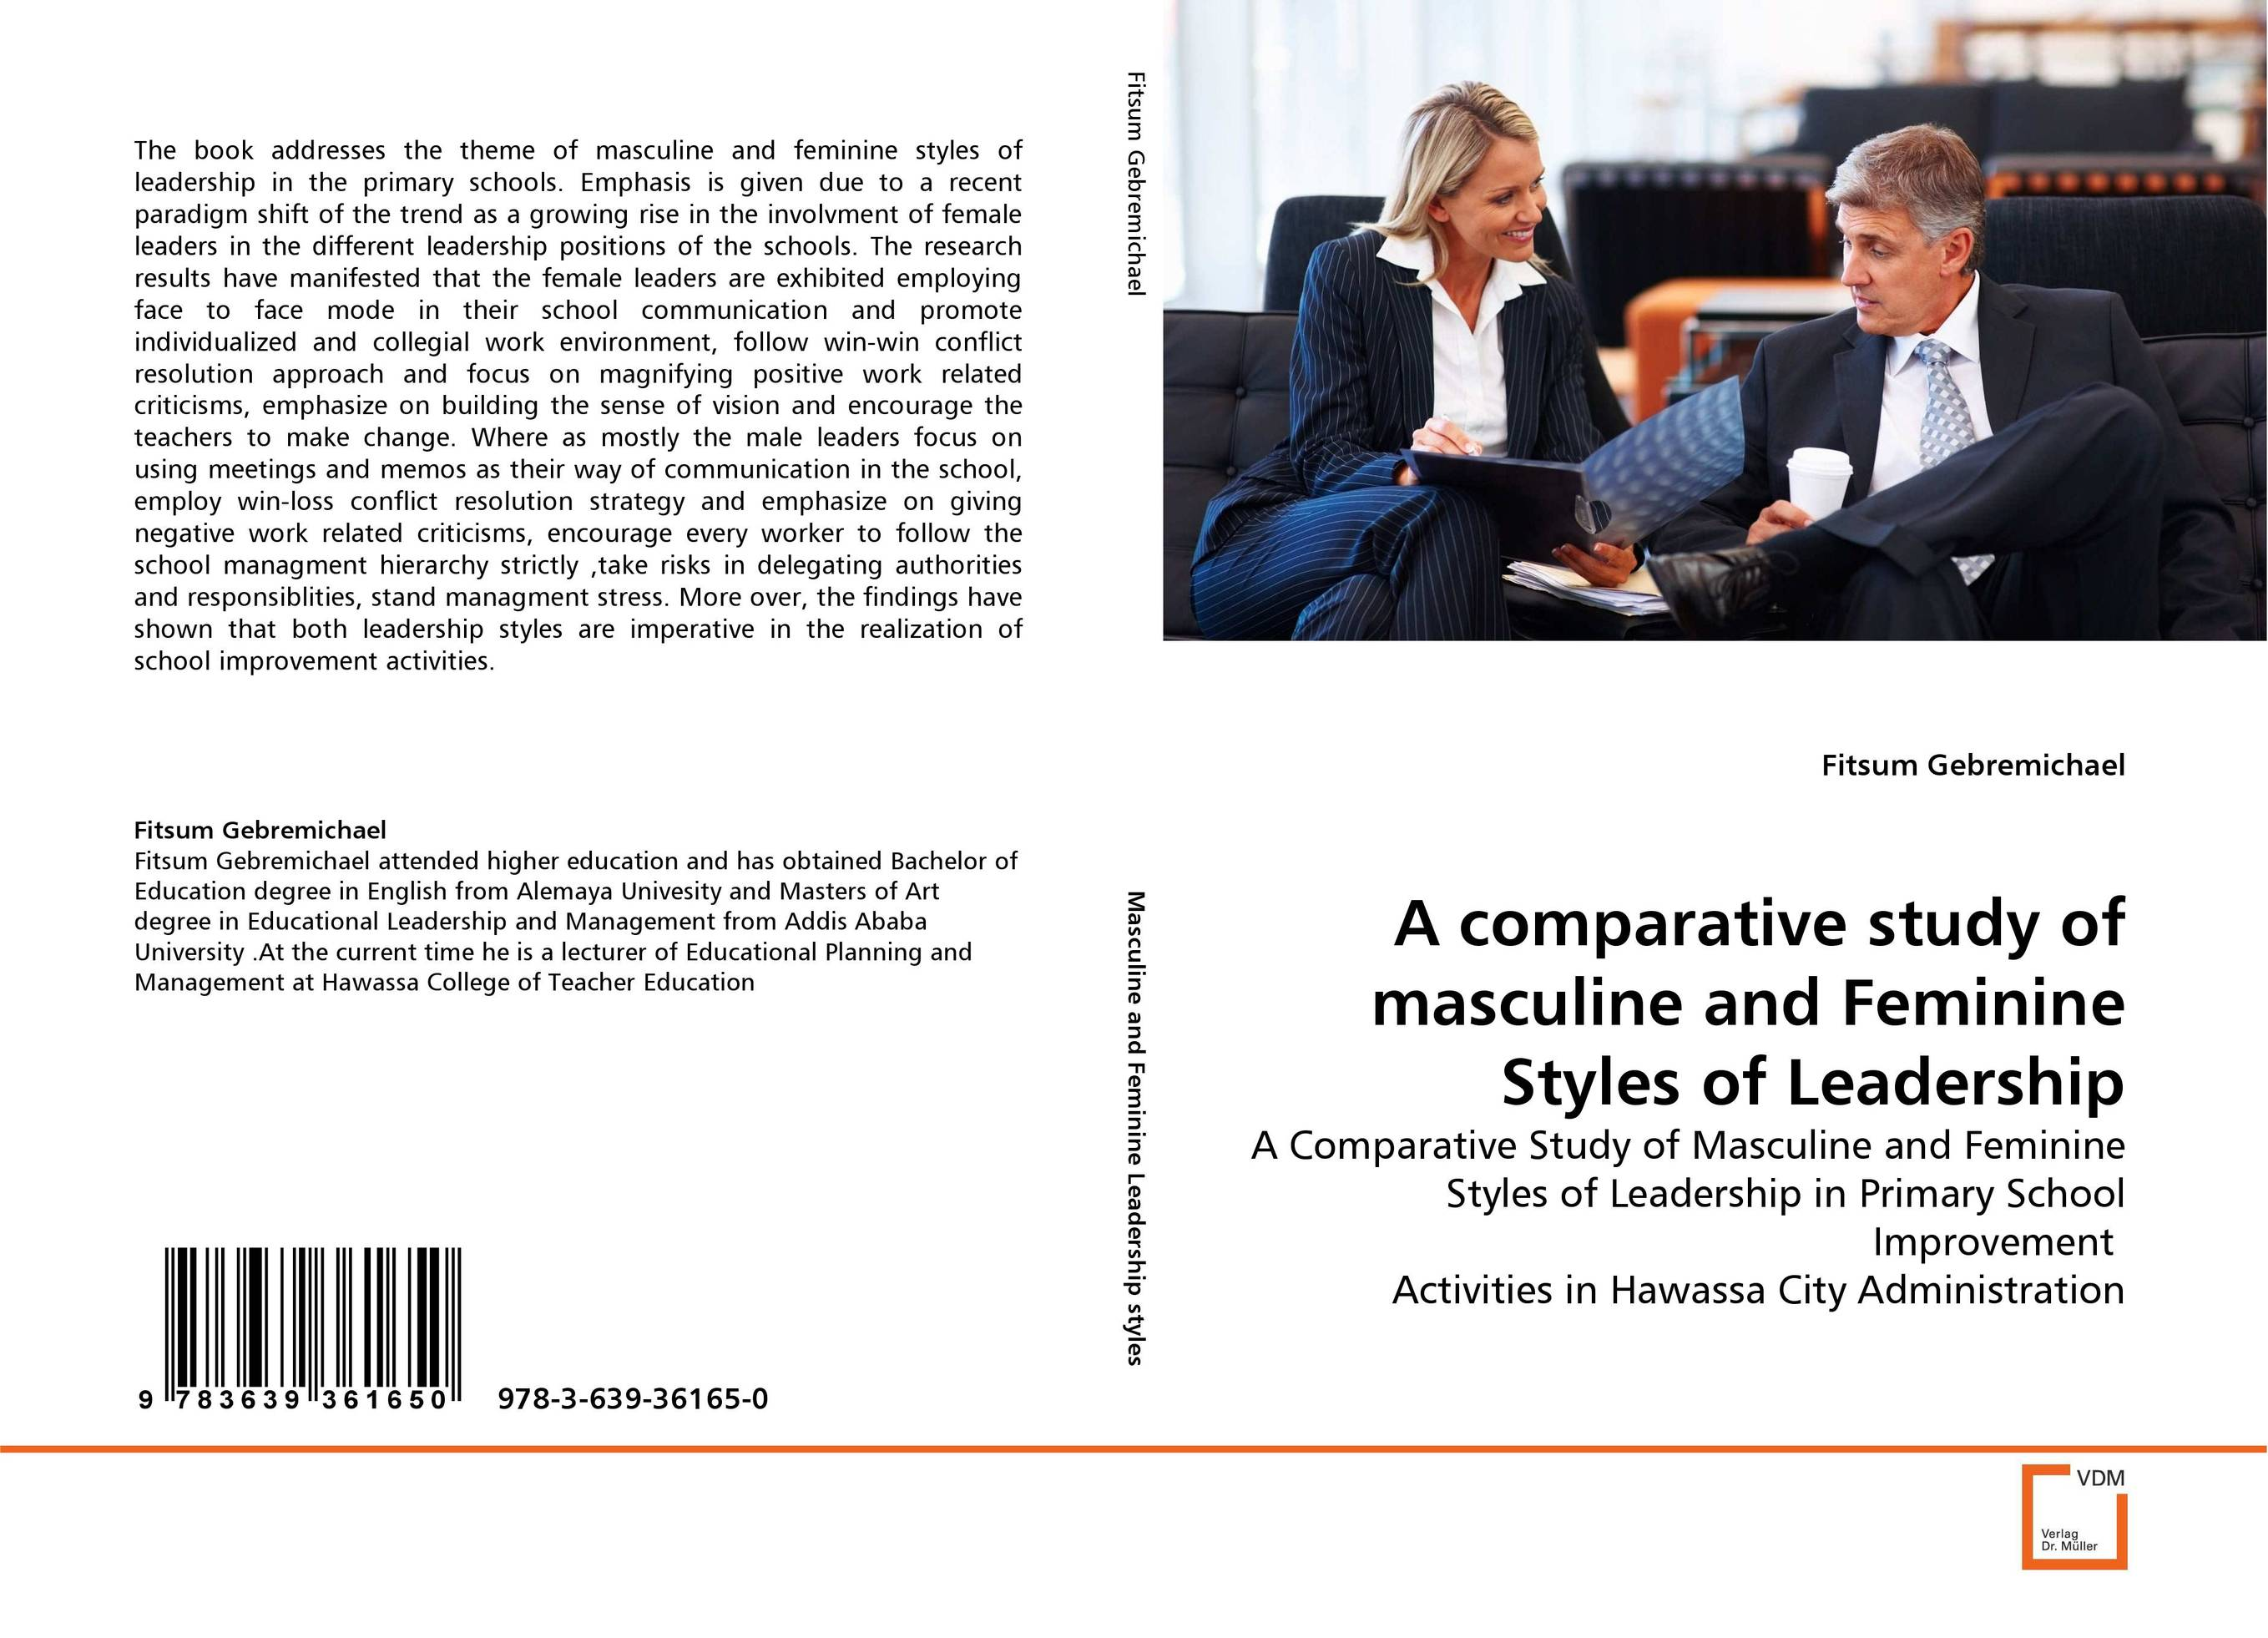 A comparative study of masculine and Feminine Styles of Leadership leadership the importance of communication and sensemaking